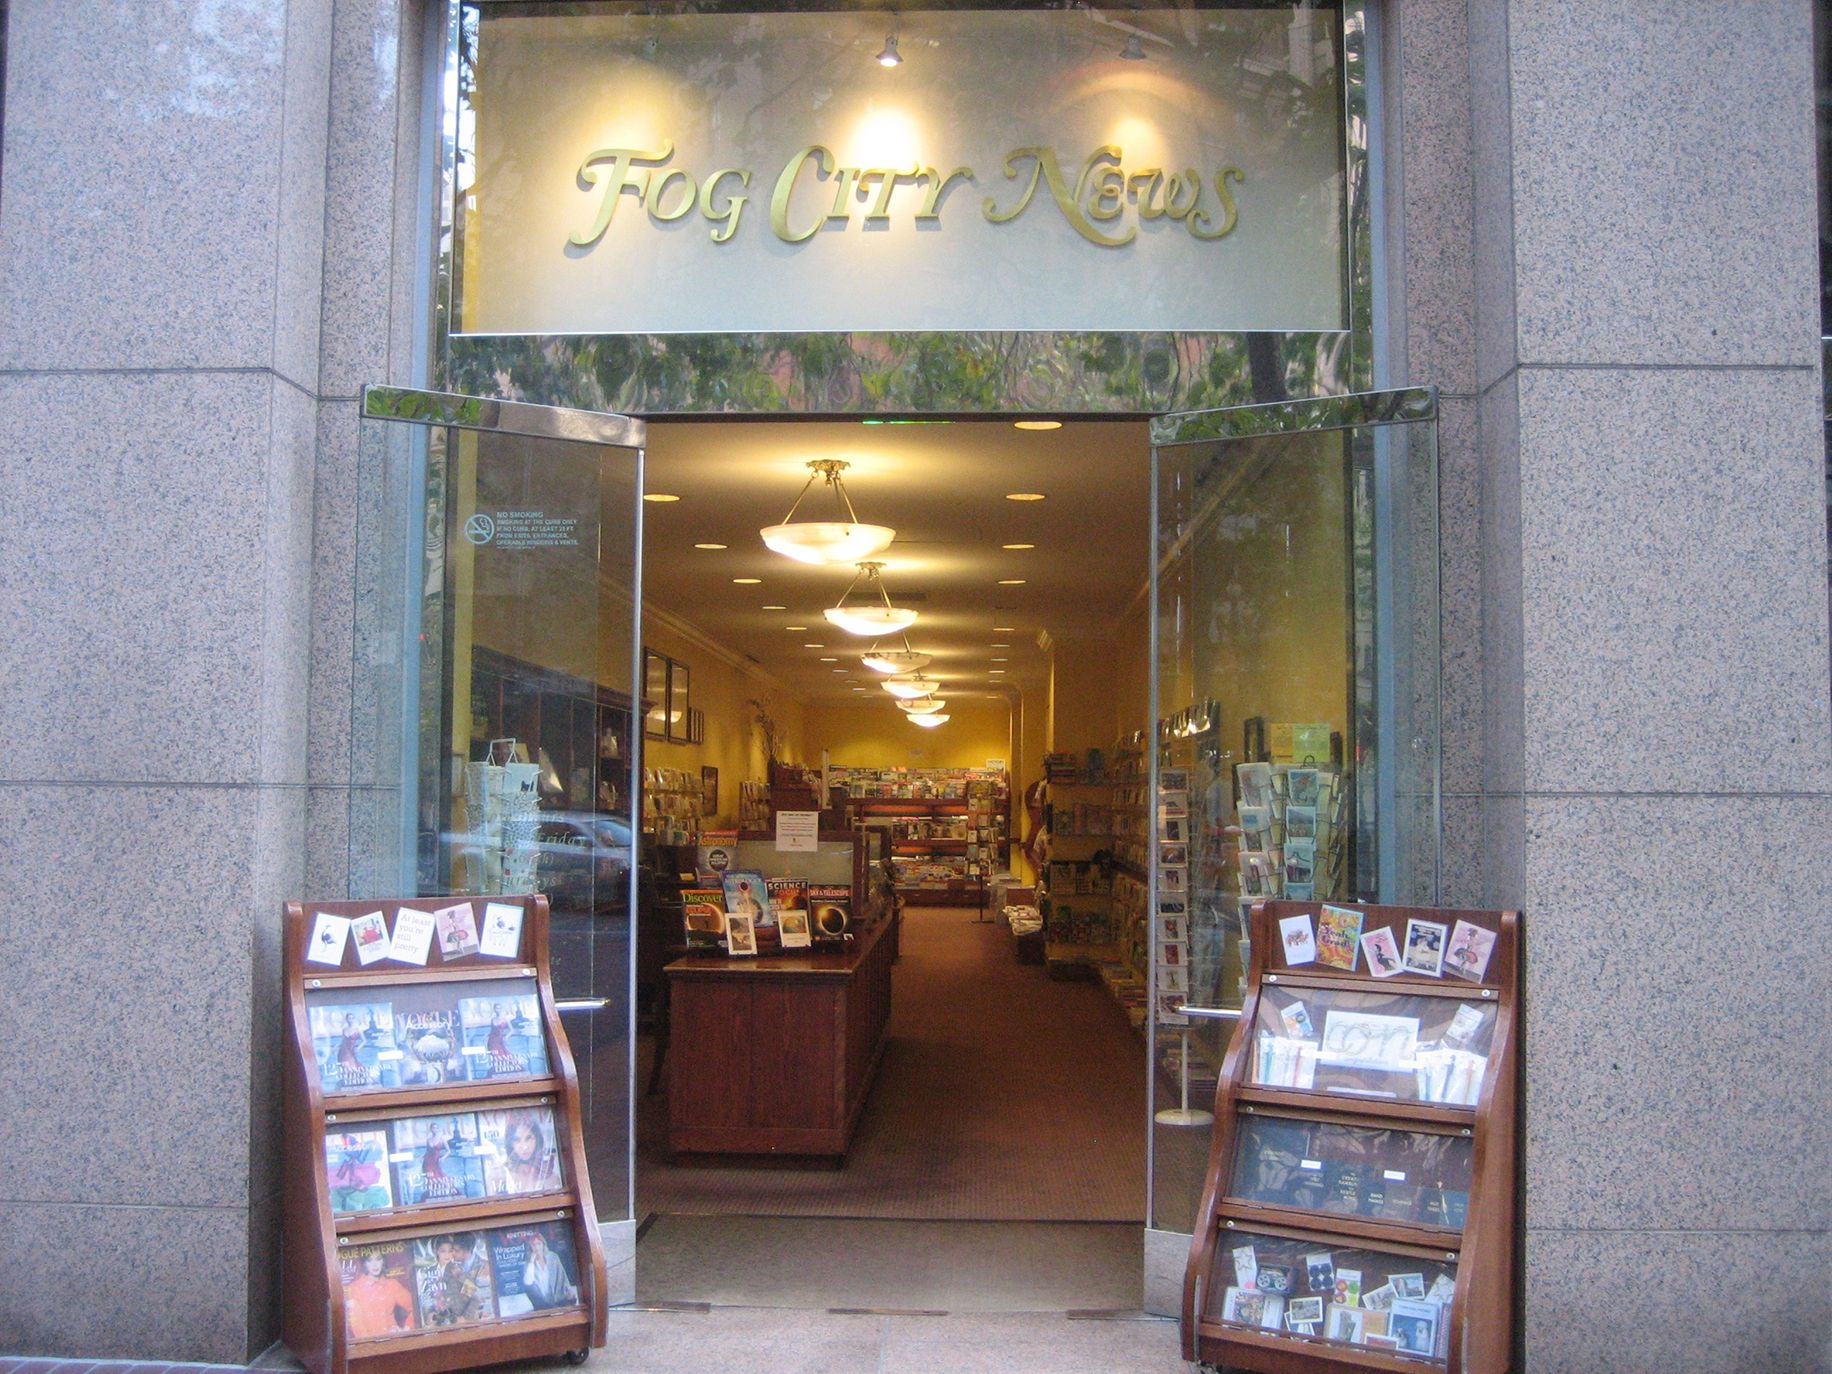 San Francisco's Fog City News has been open on Market Street since 1999.